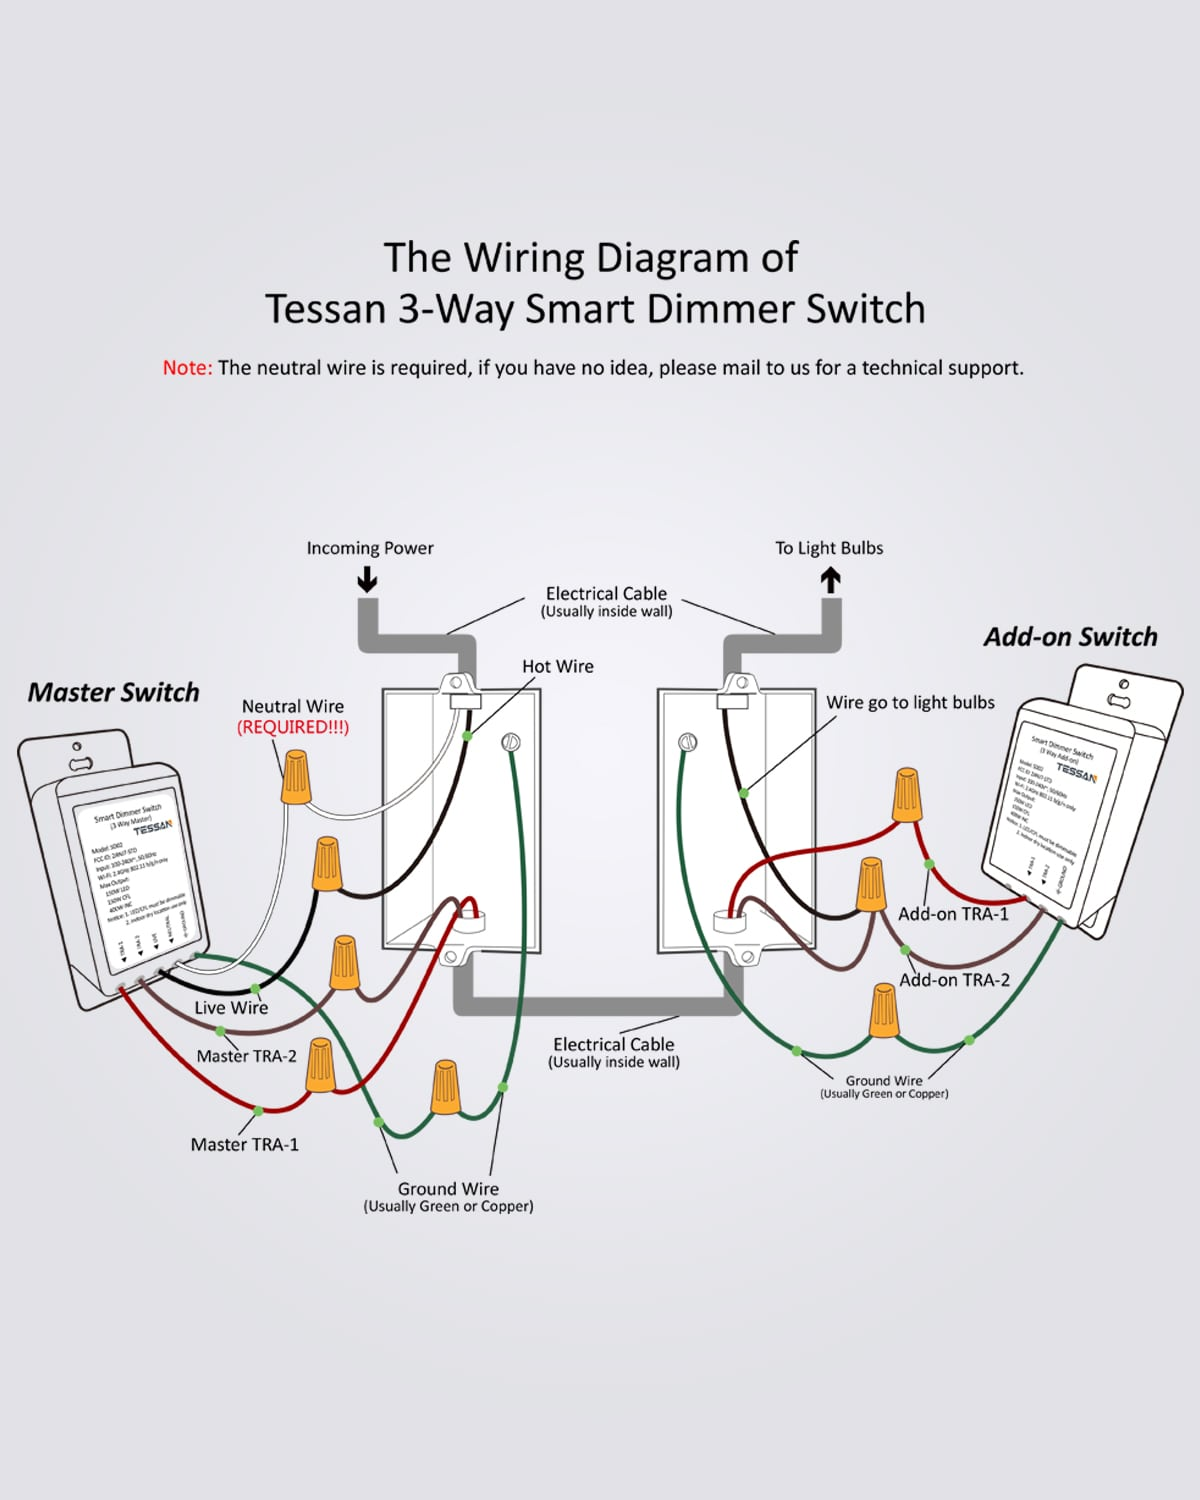 3 way dimmer switch wiring diagram 2 3 way smart dimmer switch for dimmable led lights tessan com  3 way smart dimmer switch for dimmable